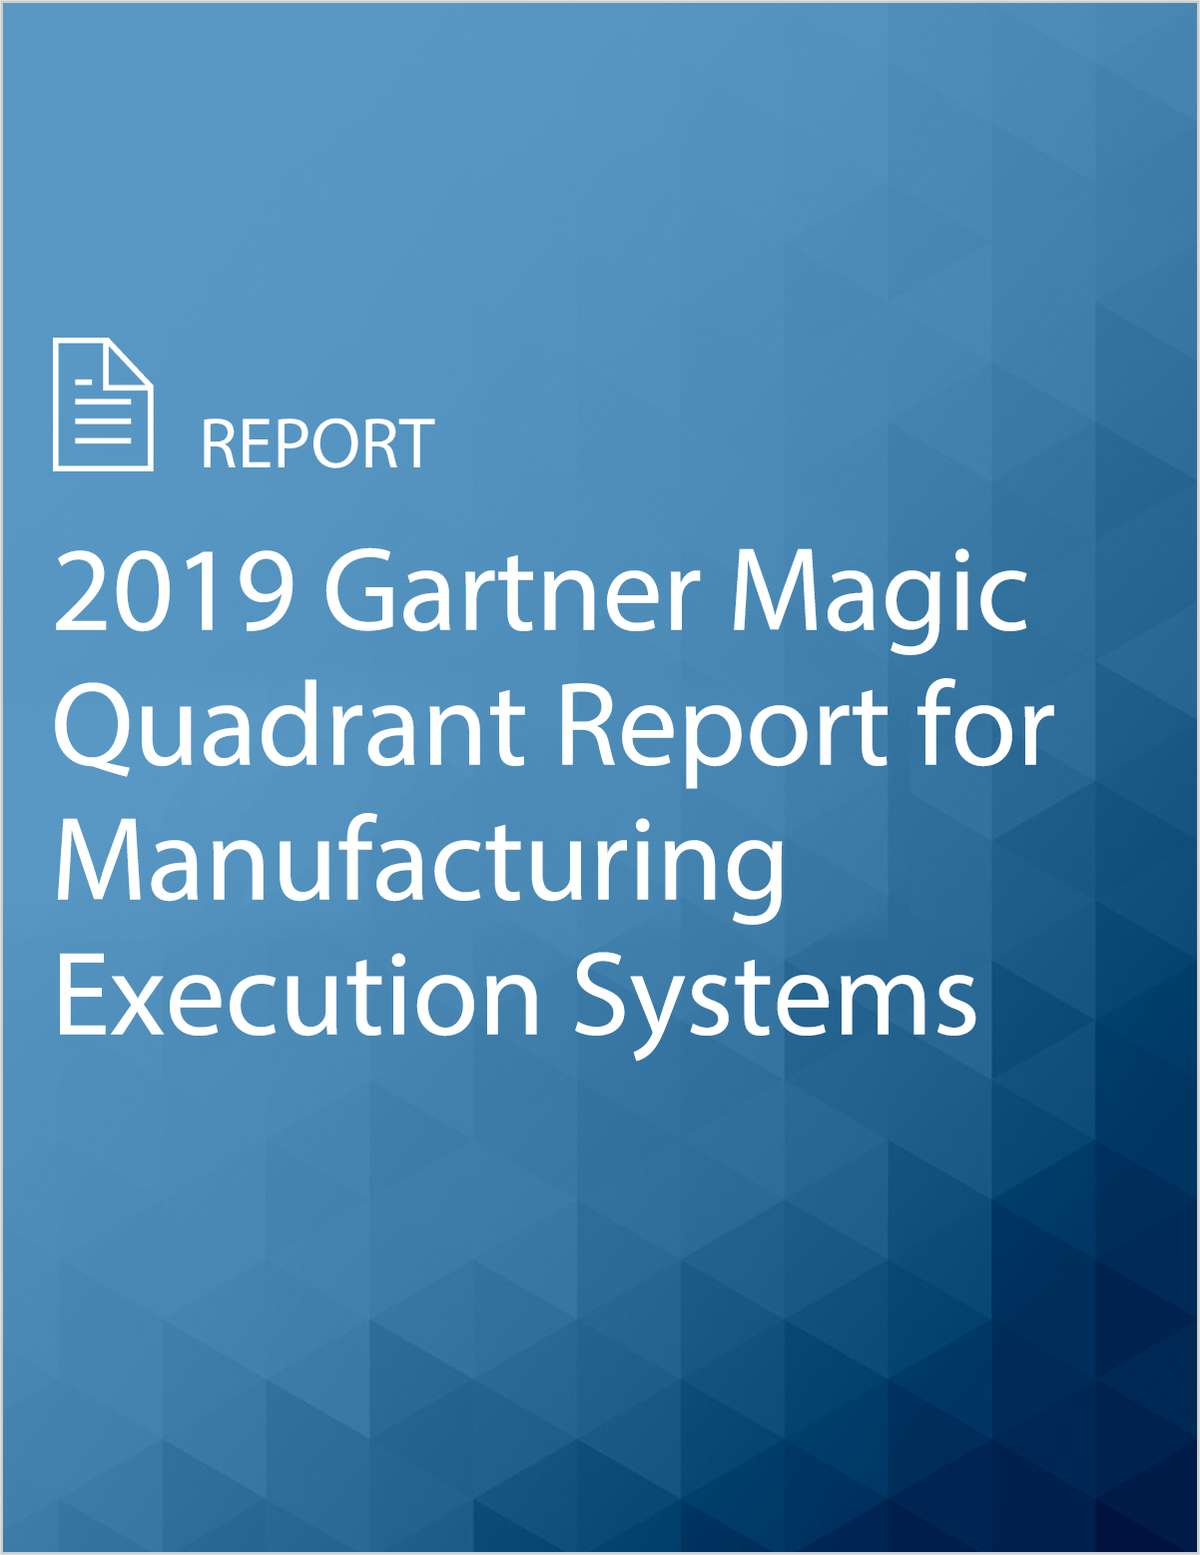 2019 Gartner Magic Quadrant Report For Manufacturing Execution Systems